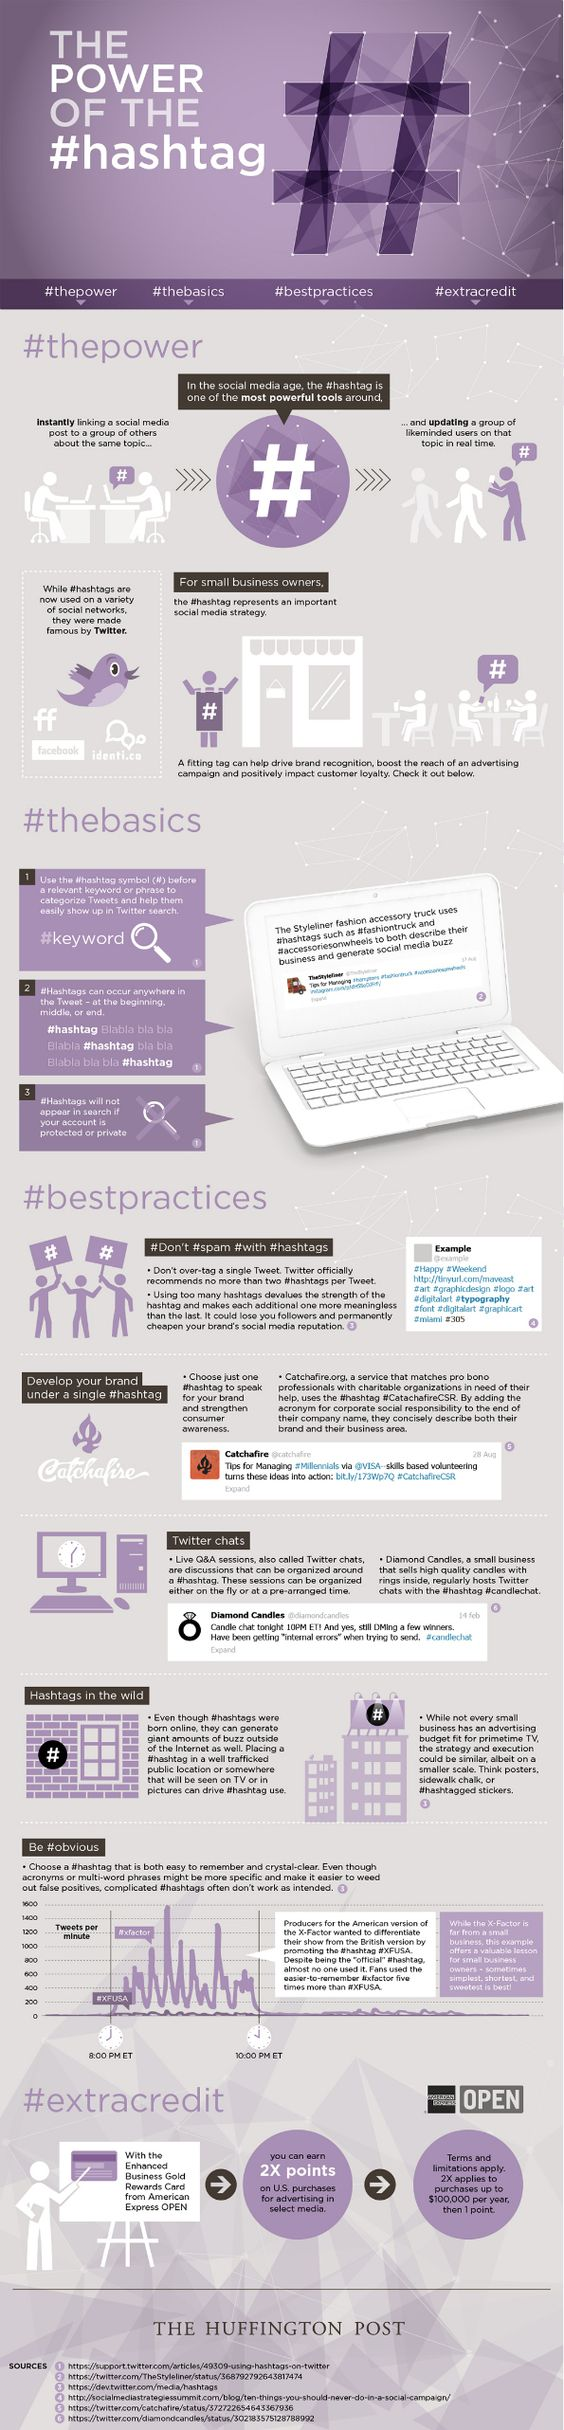 The Power of the #Hashtag - For more Pinterest best practices view our related blog post http://www.pinterest.com/pin/121667627407271786/: